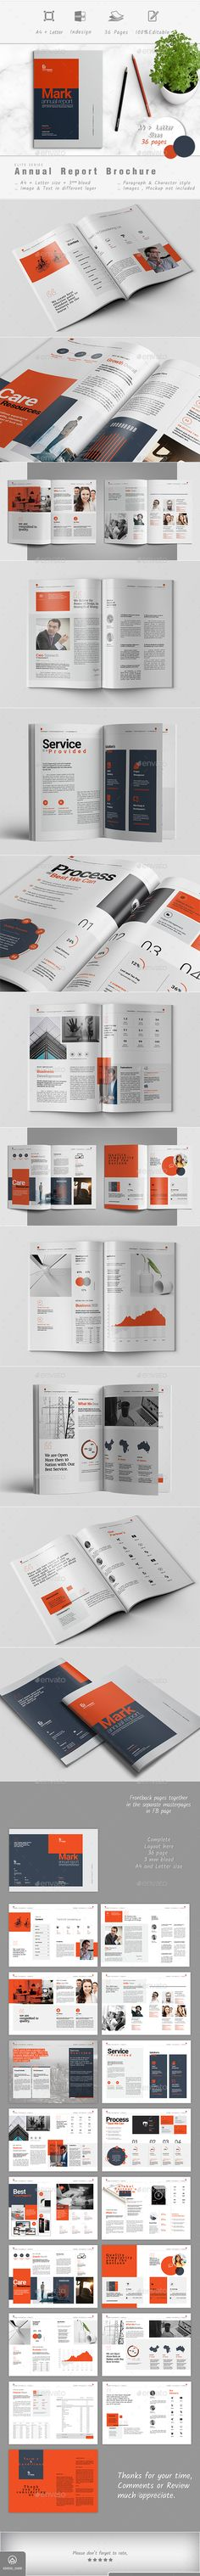 Annuual Report — InDesign INDD #ashuras_sharif #classic brochure • Download ➝ https://graphicriver.net/item/annual-report/19131681?ref=pxcr